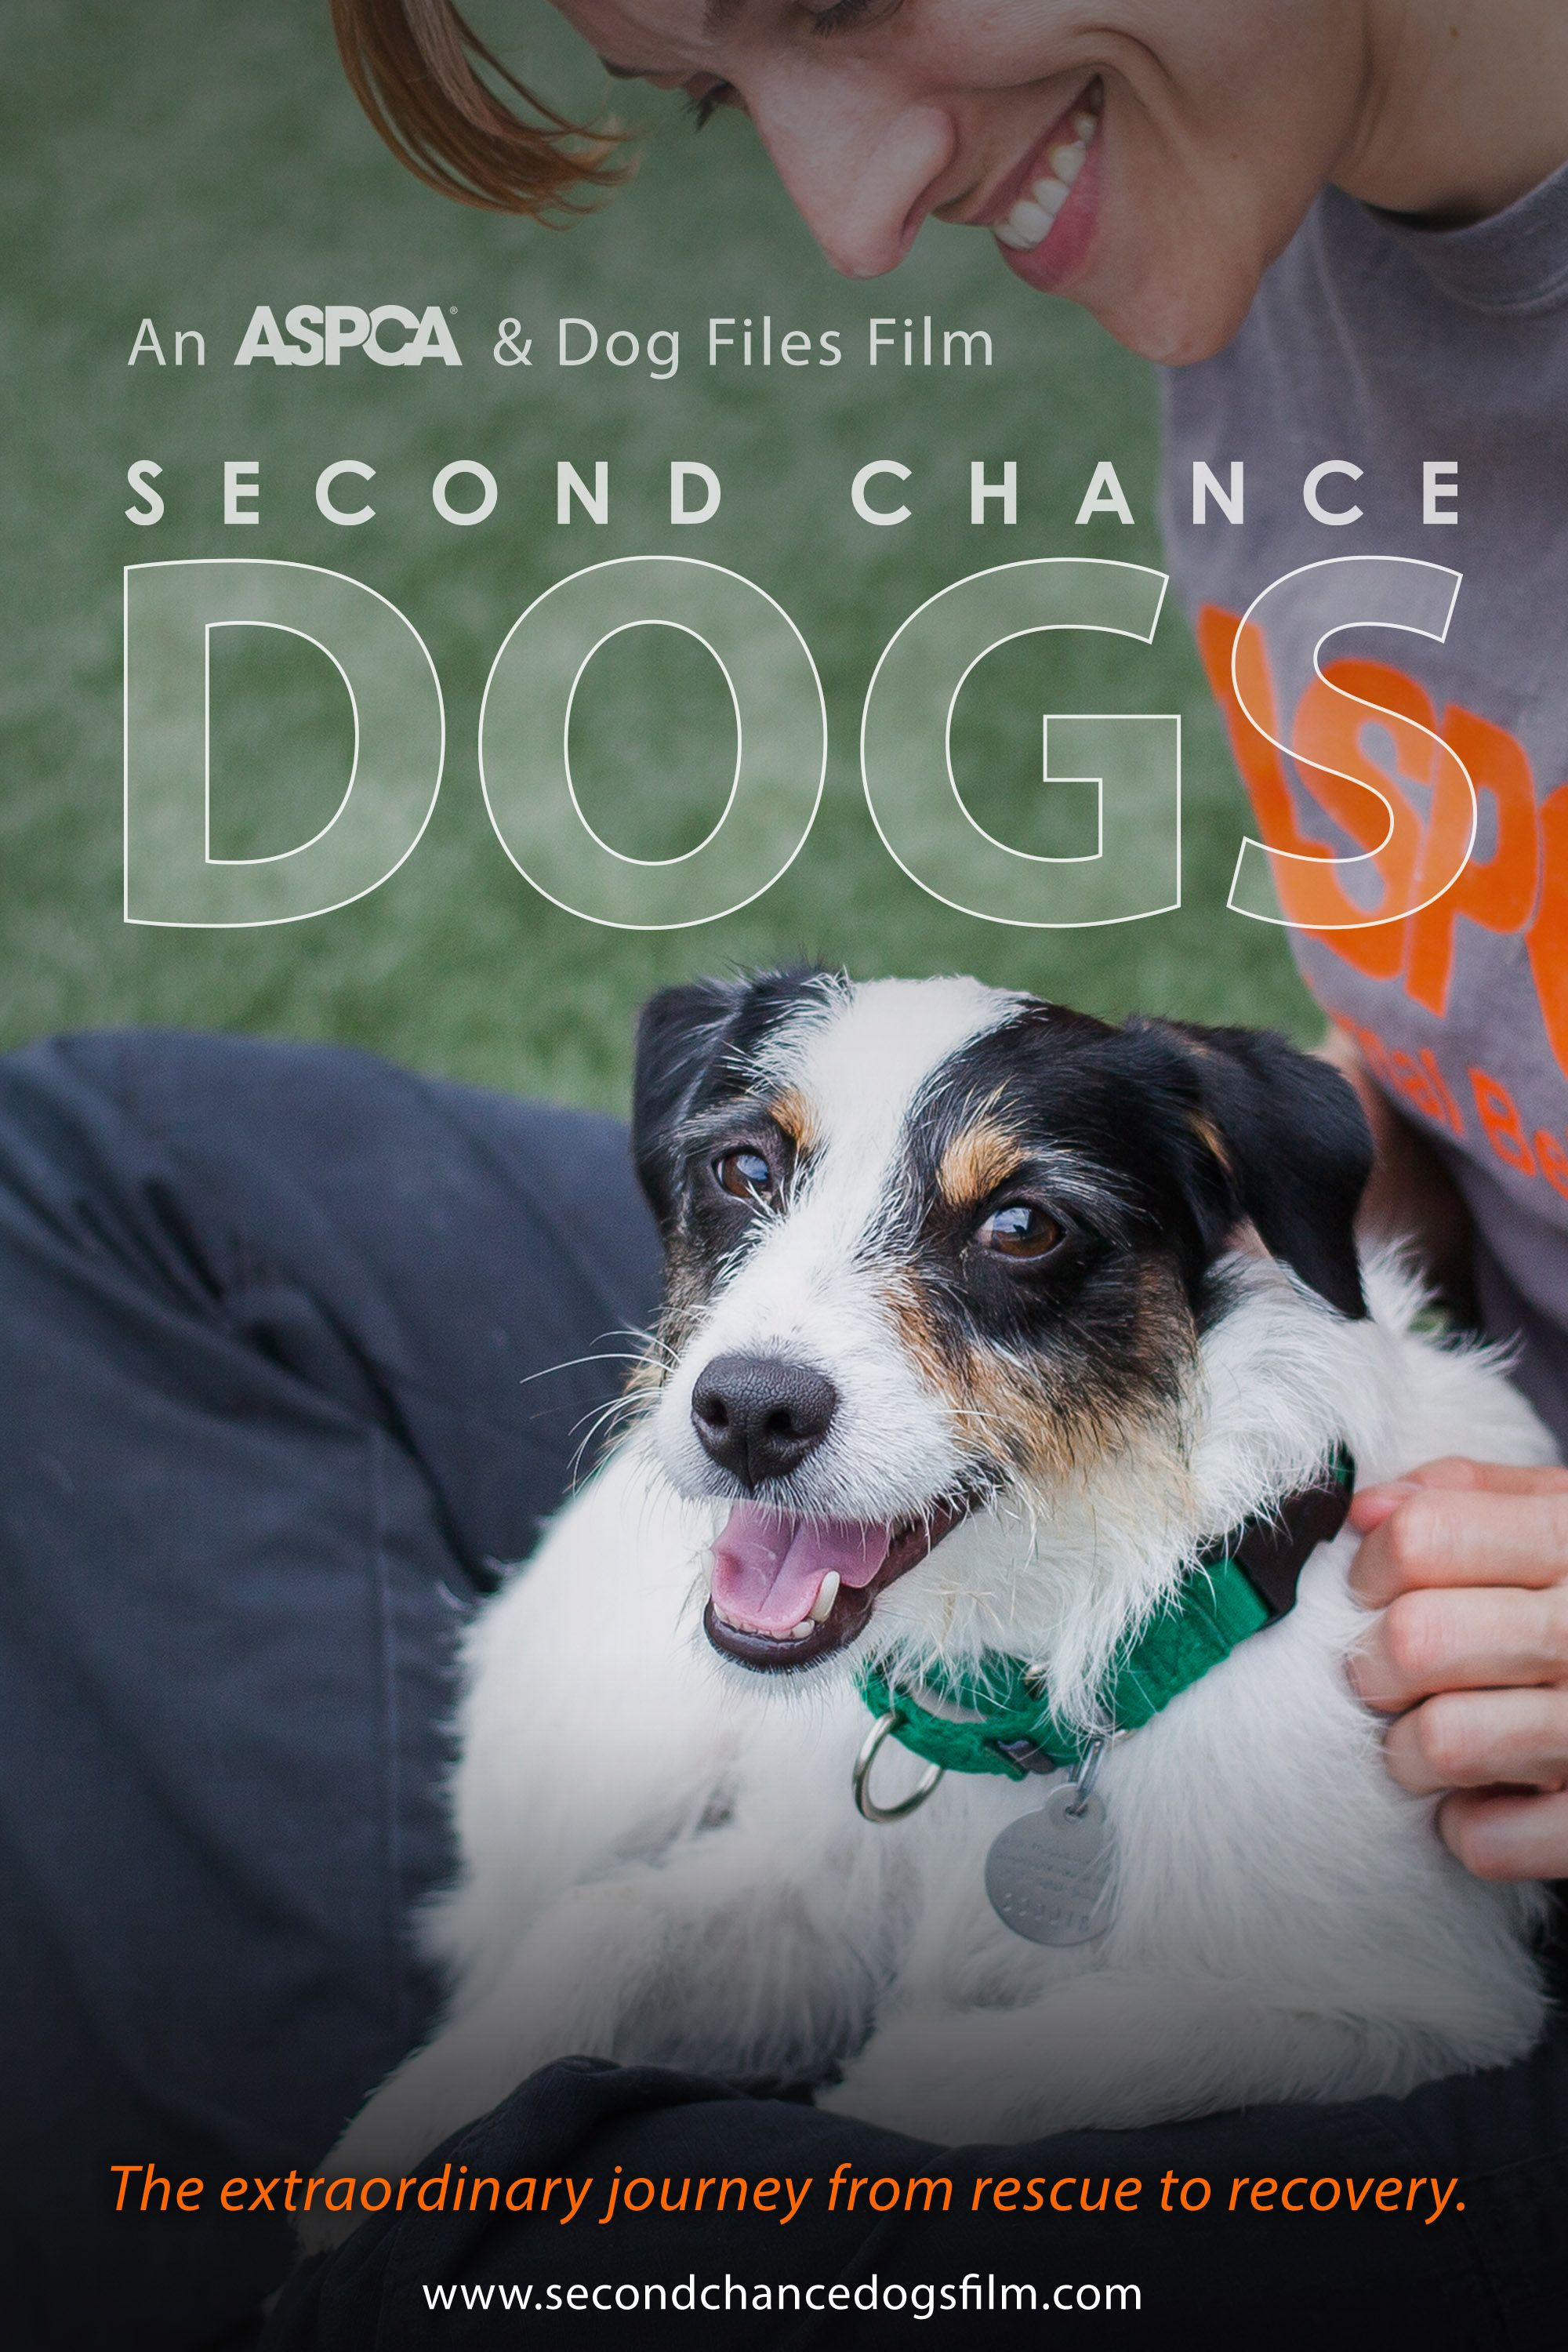 Aspca Documentary Second Chance Dogs Now Available On Netflix Second Chance Dogs Dog Documentary Aspca